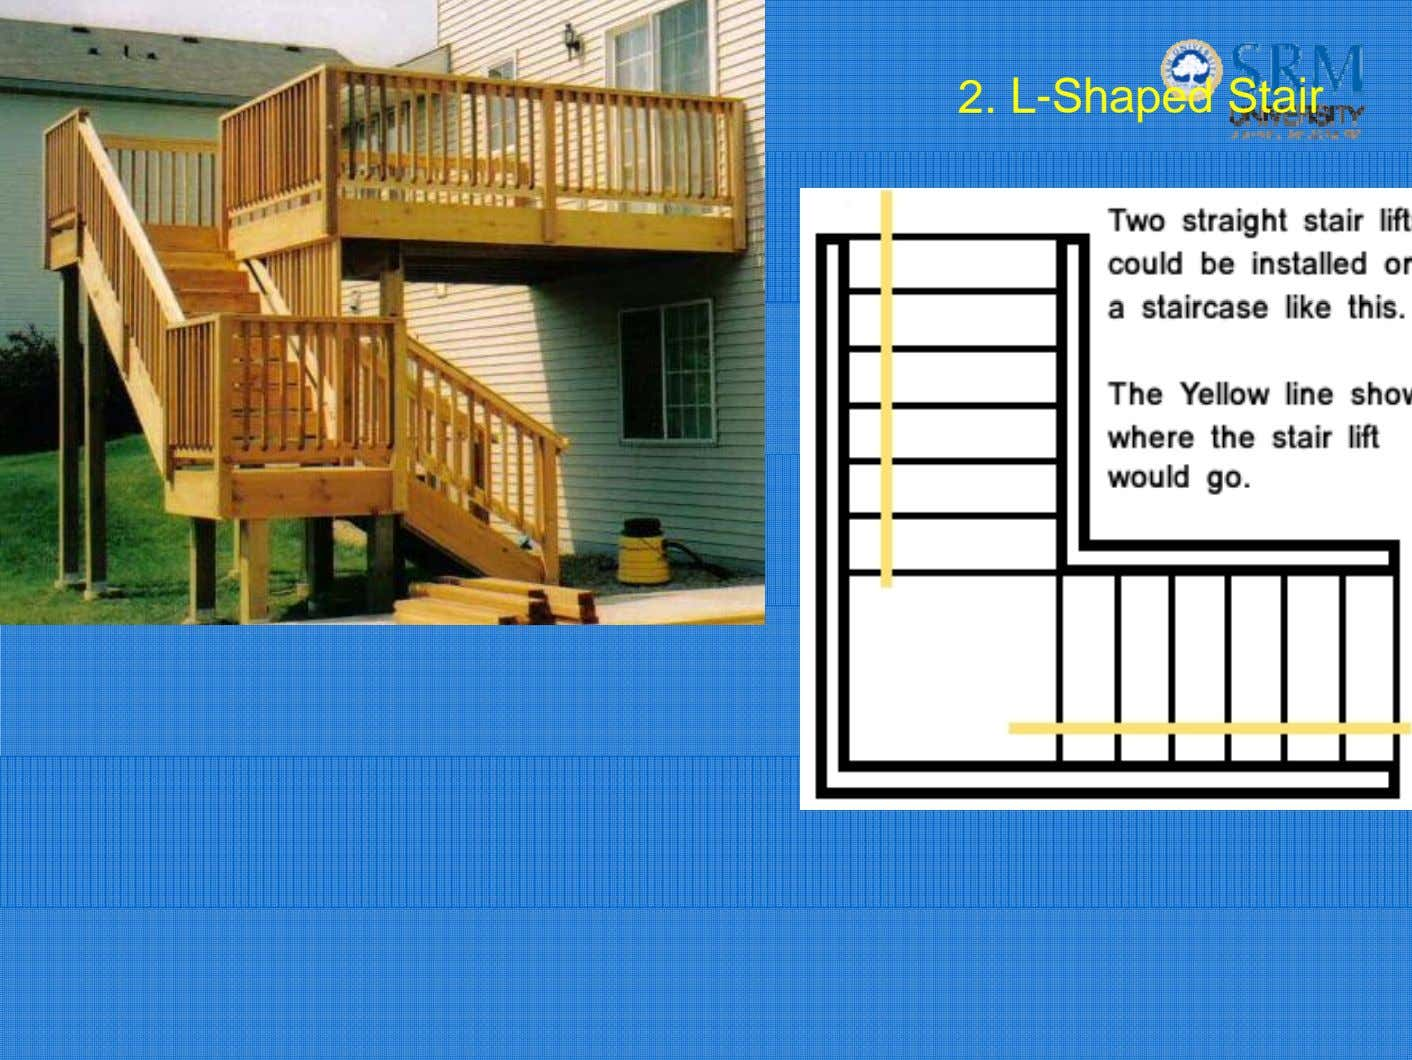 2. L-Shaped Stair